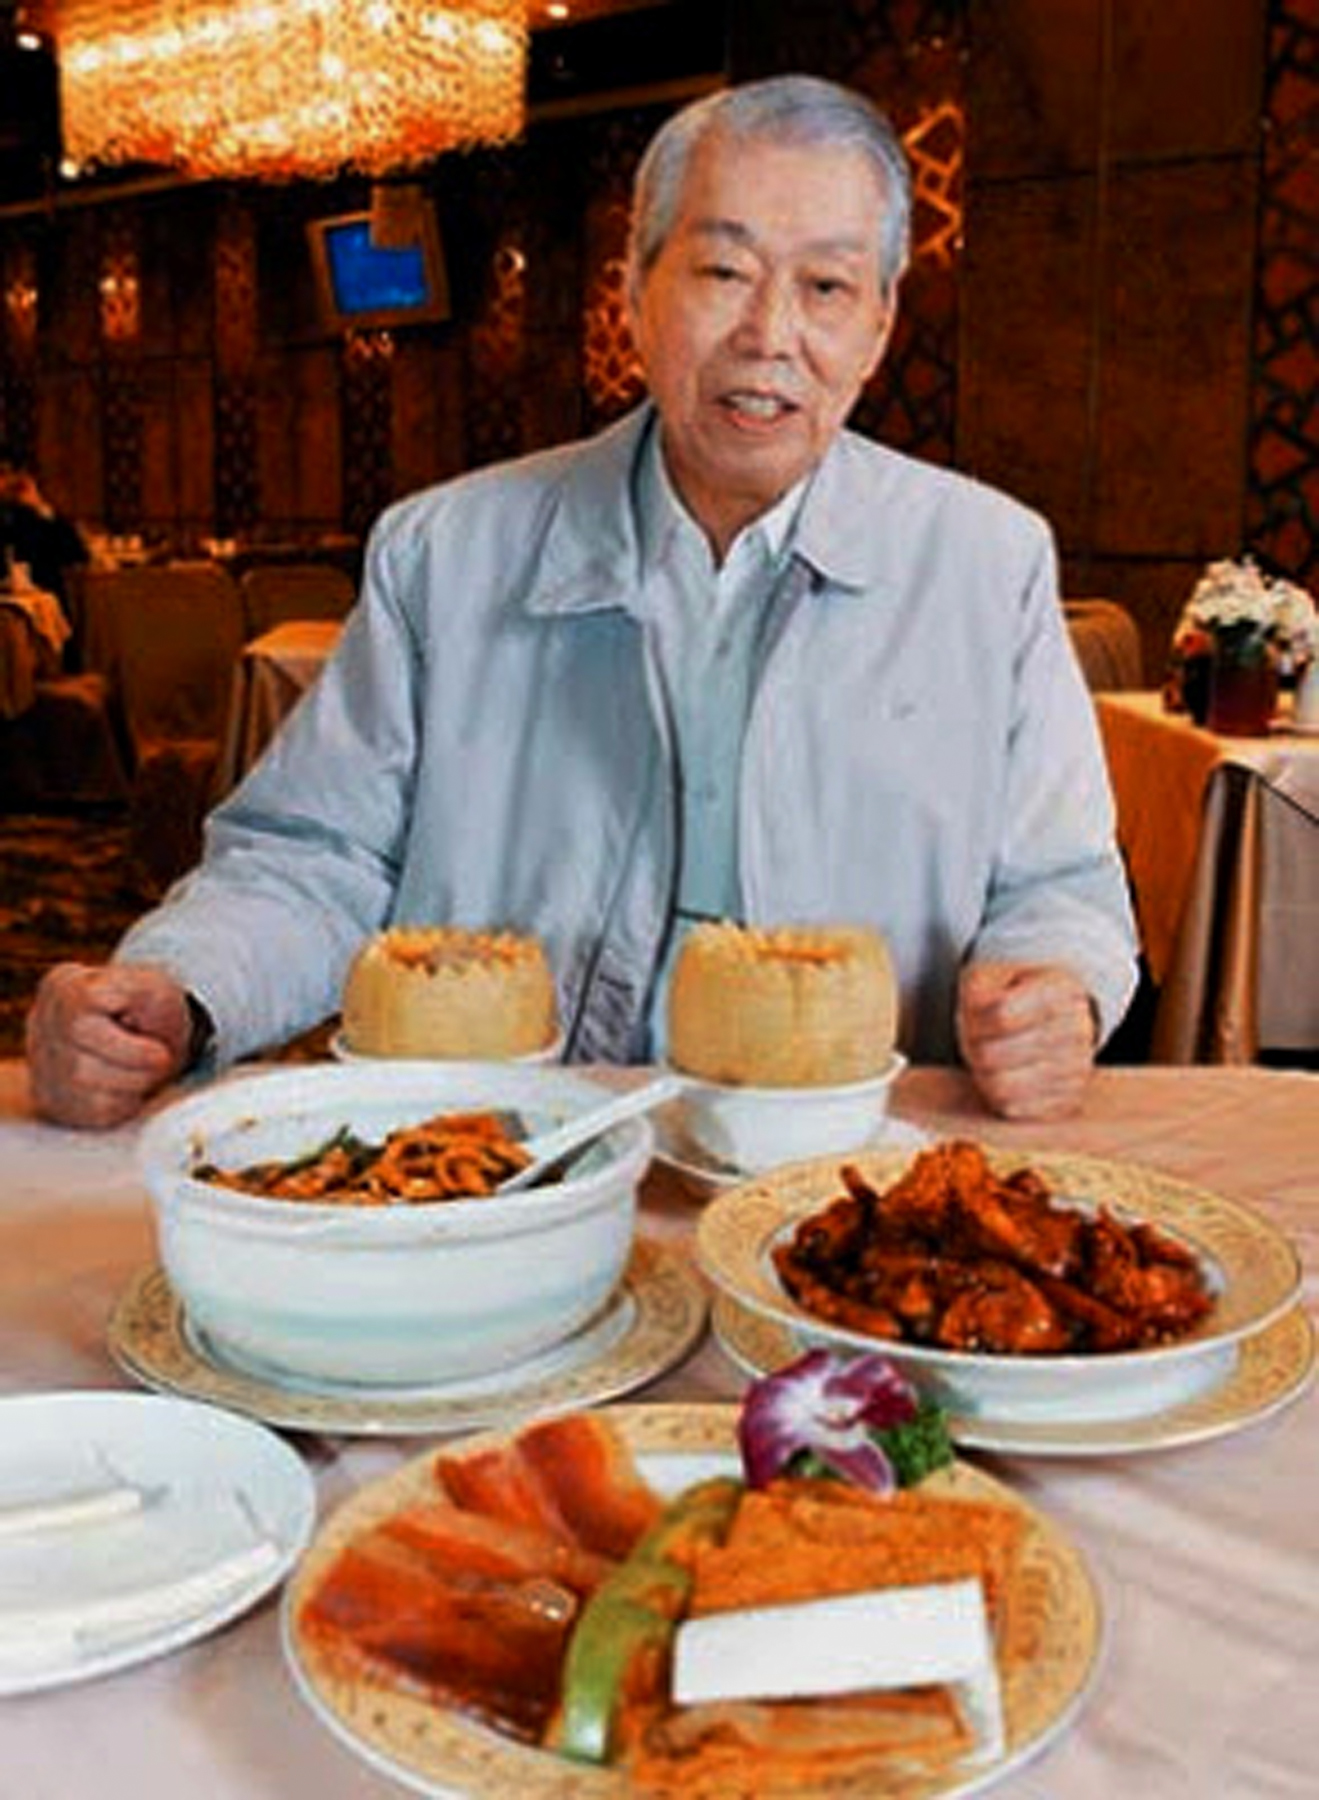 In this 2008 photo, chef Peng Chang-kuei poses for a photo as he is seated at a table in his restaurant Peng's Garden in Taipei. The chef, who has been credited with inventing General Tso's chicken, a world-famous Chinese food staple that is not served in China, died in Taiwan on Nov. 30 at the age of 98